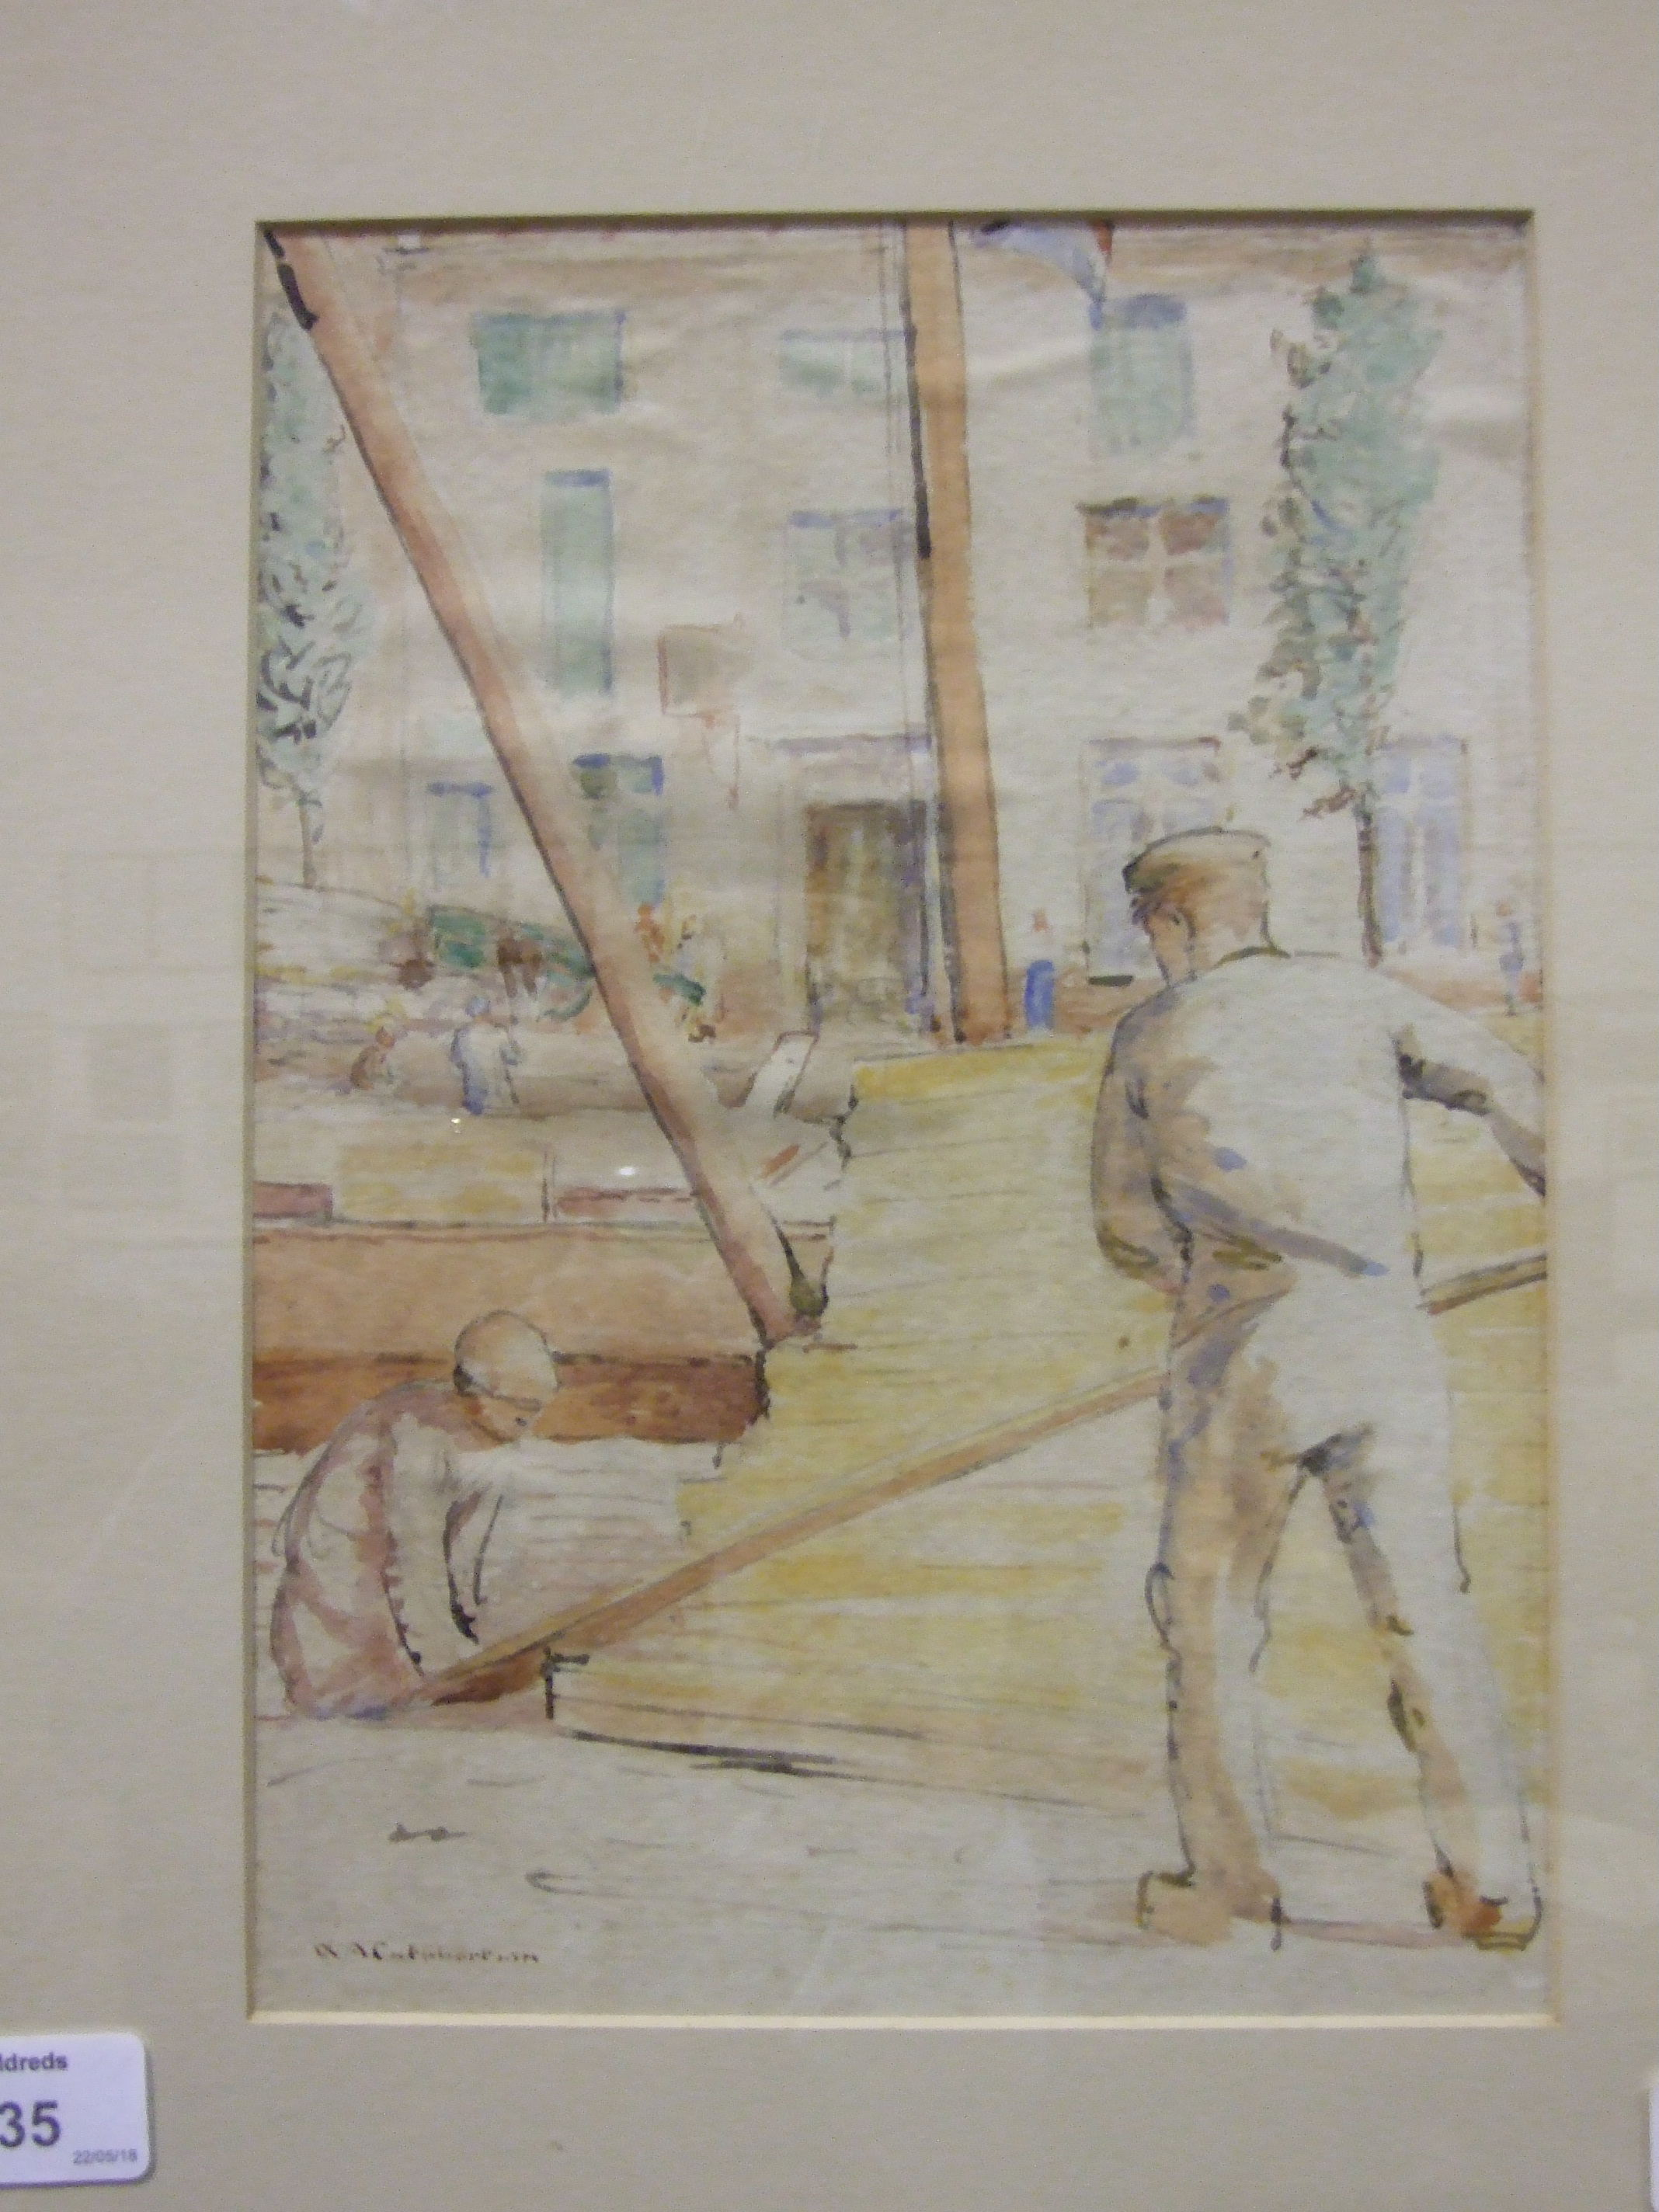 W A Cuthbertson STUDY OF WORKMEN HANDLING PLANKS OF WOOD Signed watercolour, 27 x 19cm.